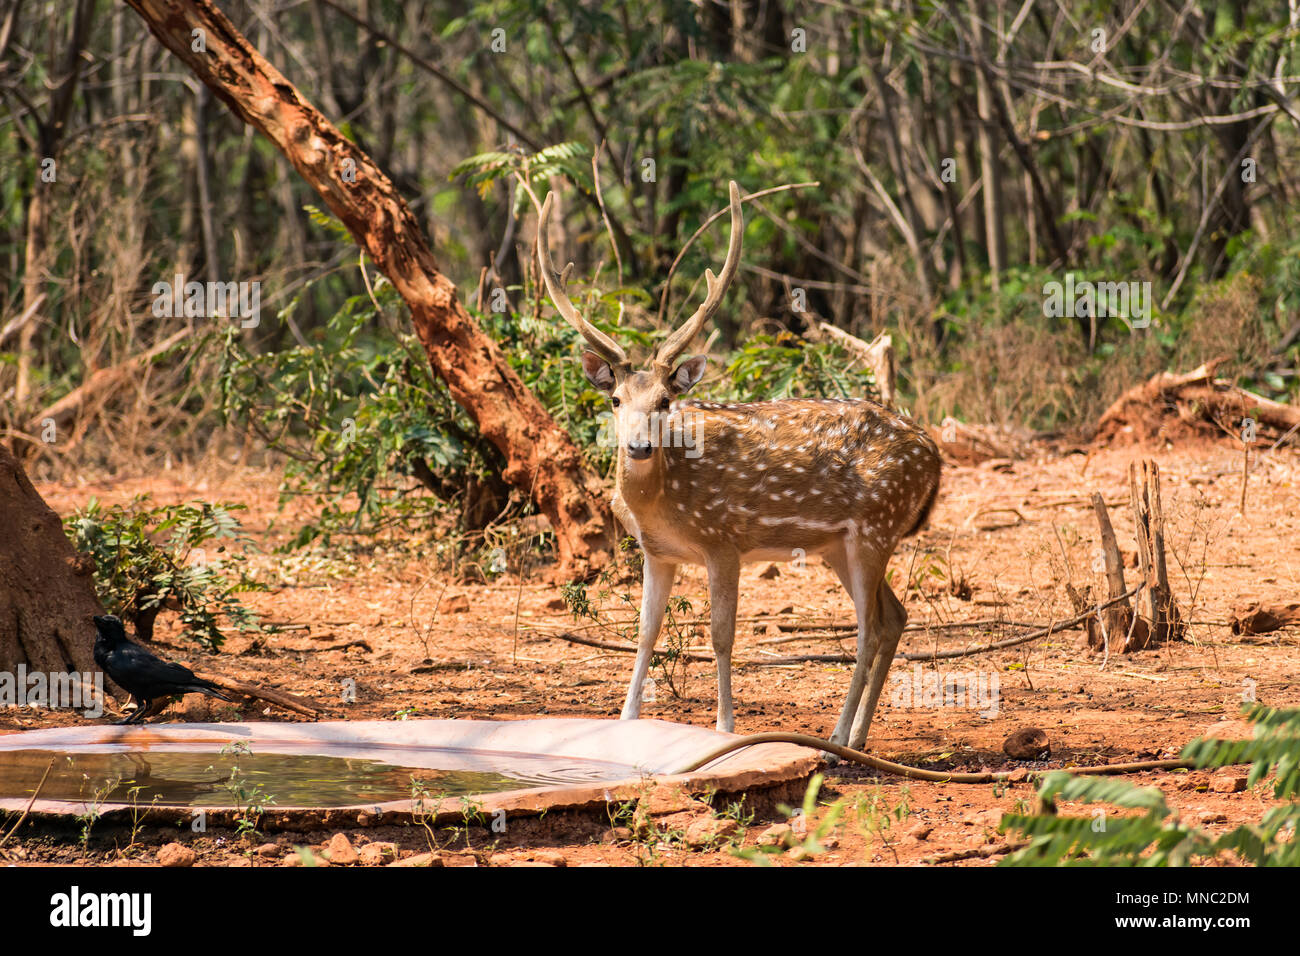 A sambar  deer  standing near water tub at zoo in sunny day. Stock Photo